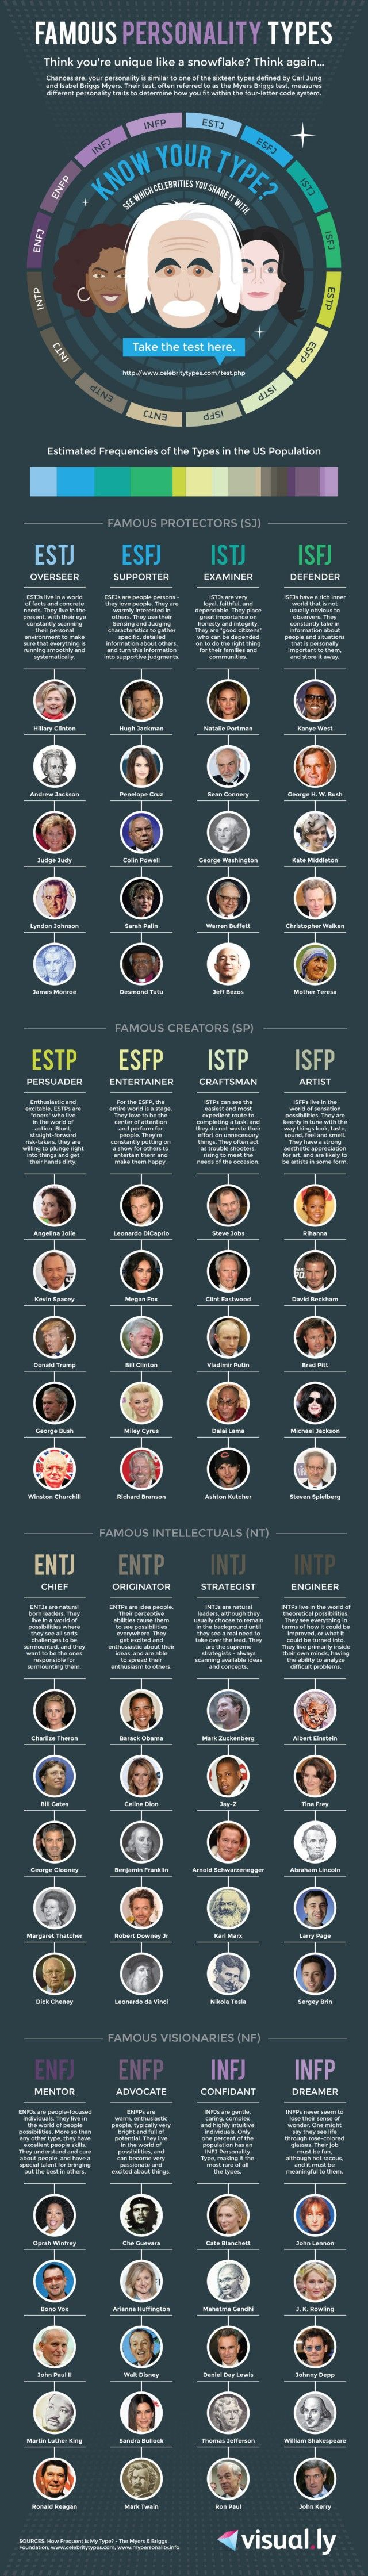 Famous Personality Types [Infographic] | Daily Infographic